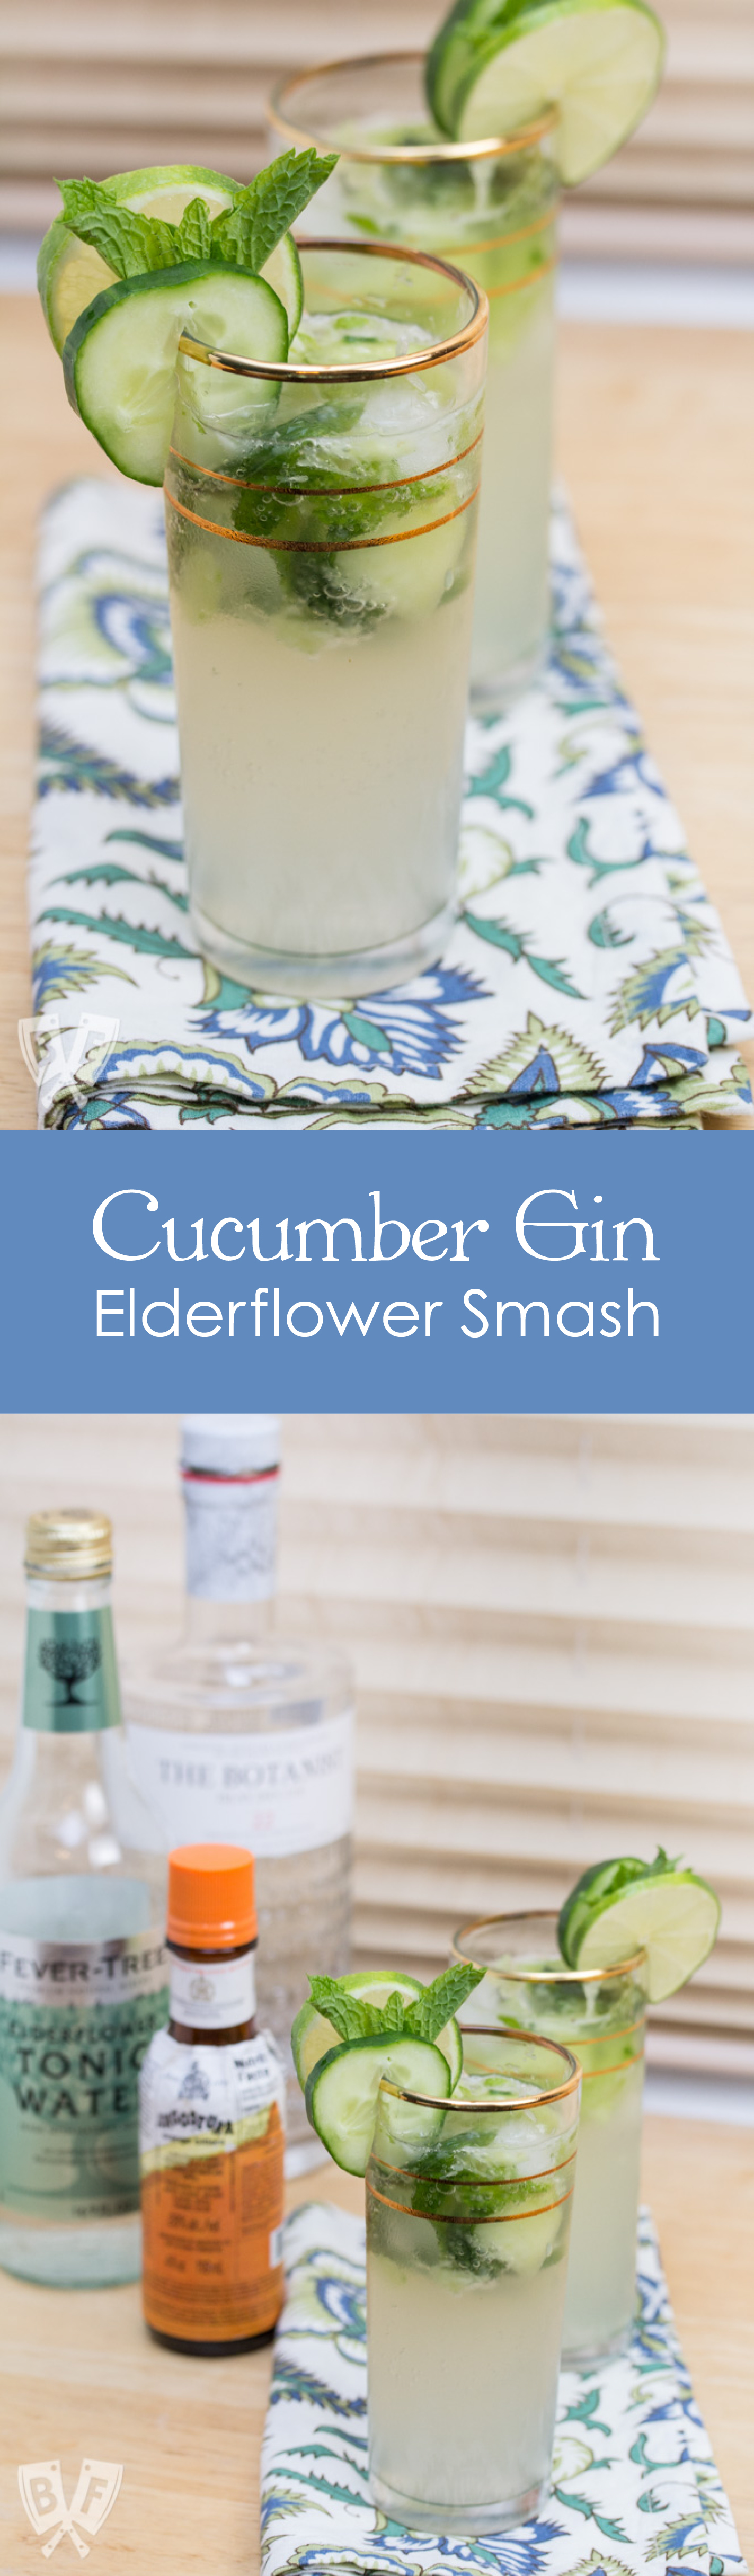 Cucumber Gin Elderflower Smash: Beat the heat with this cool, refreshing summer cocktail + mocktail variation!